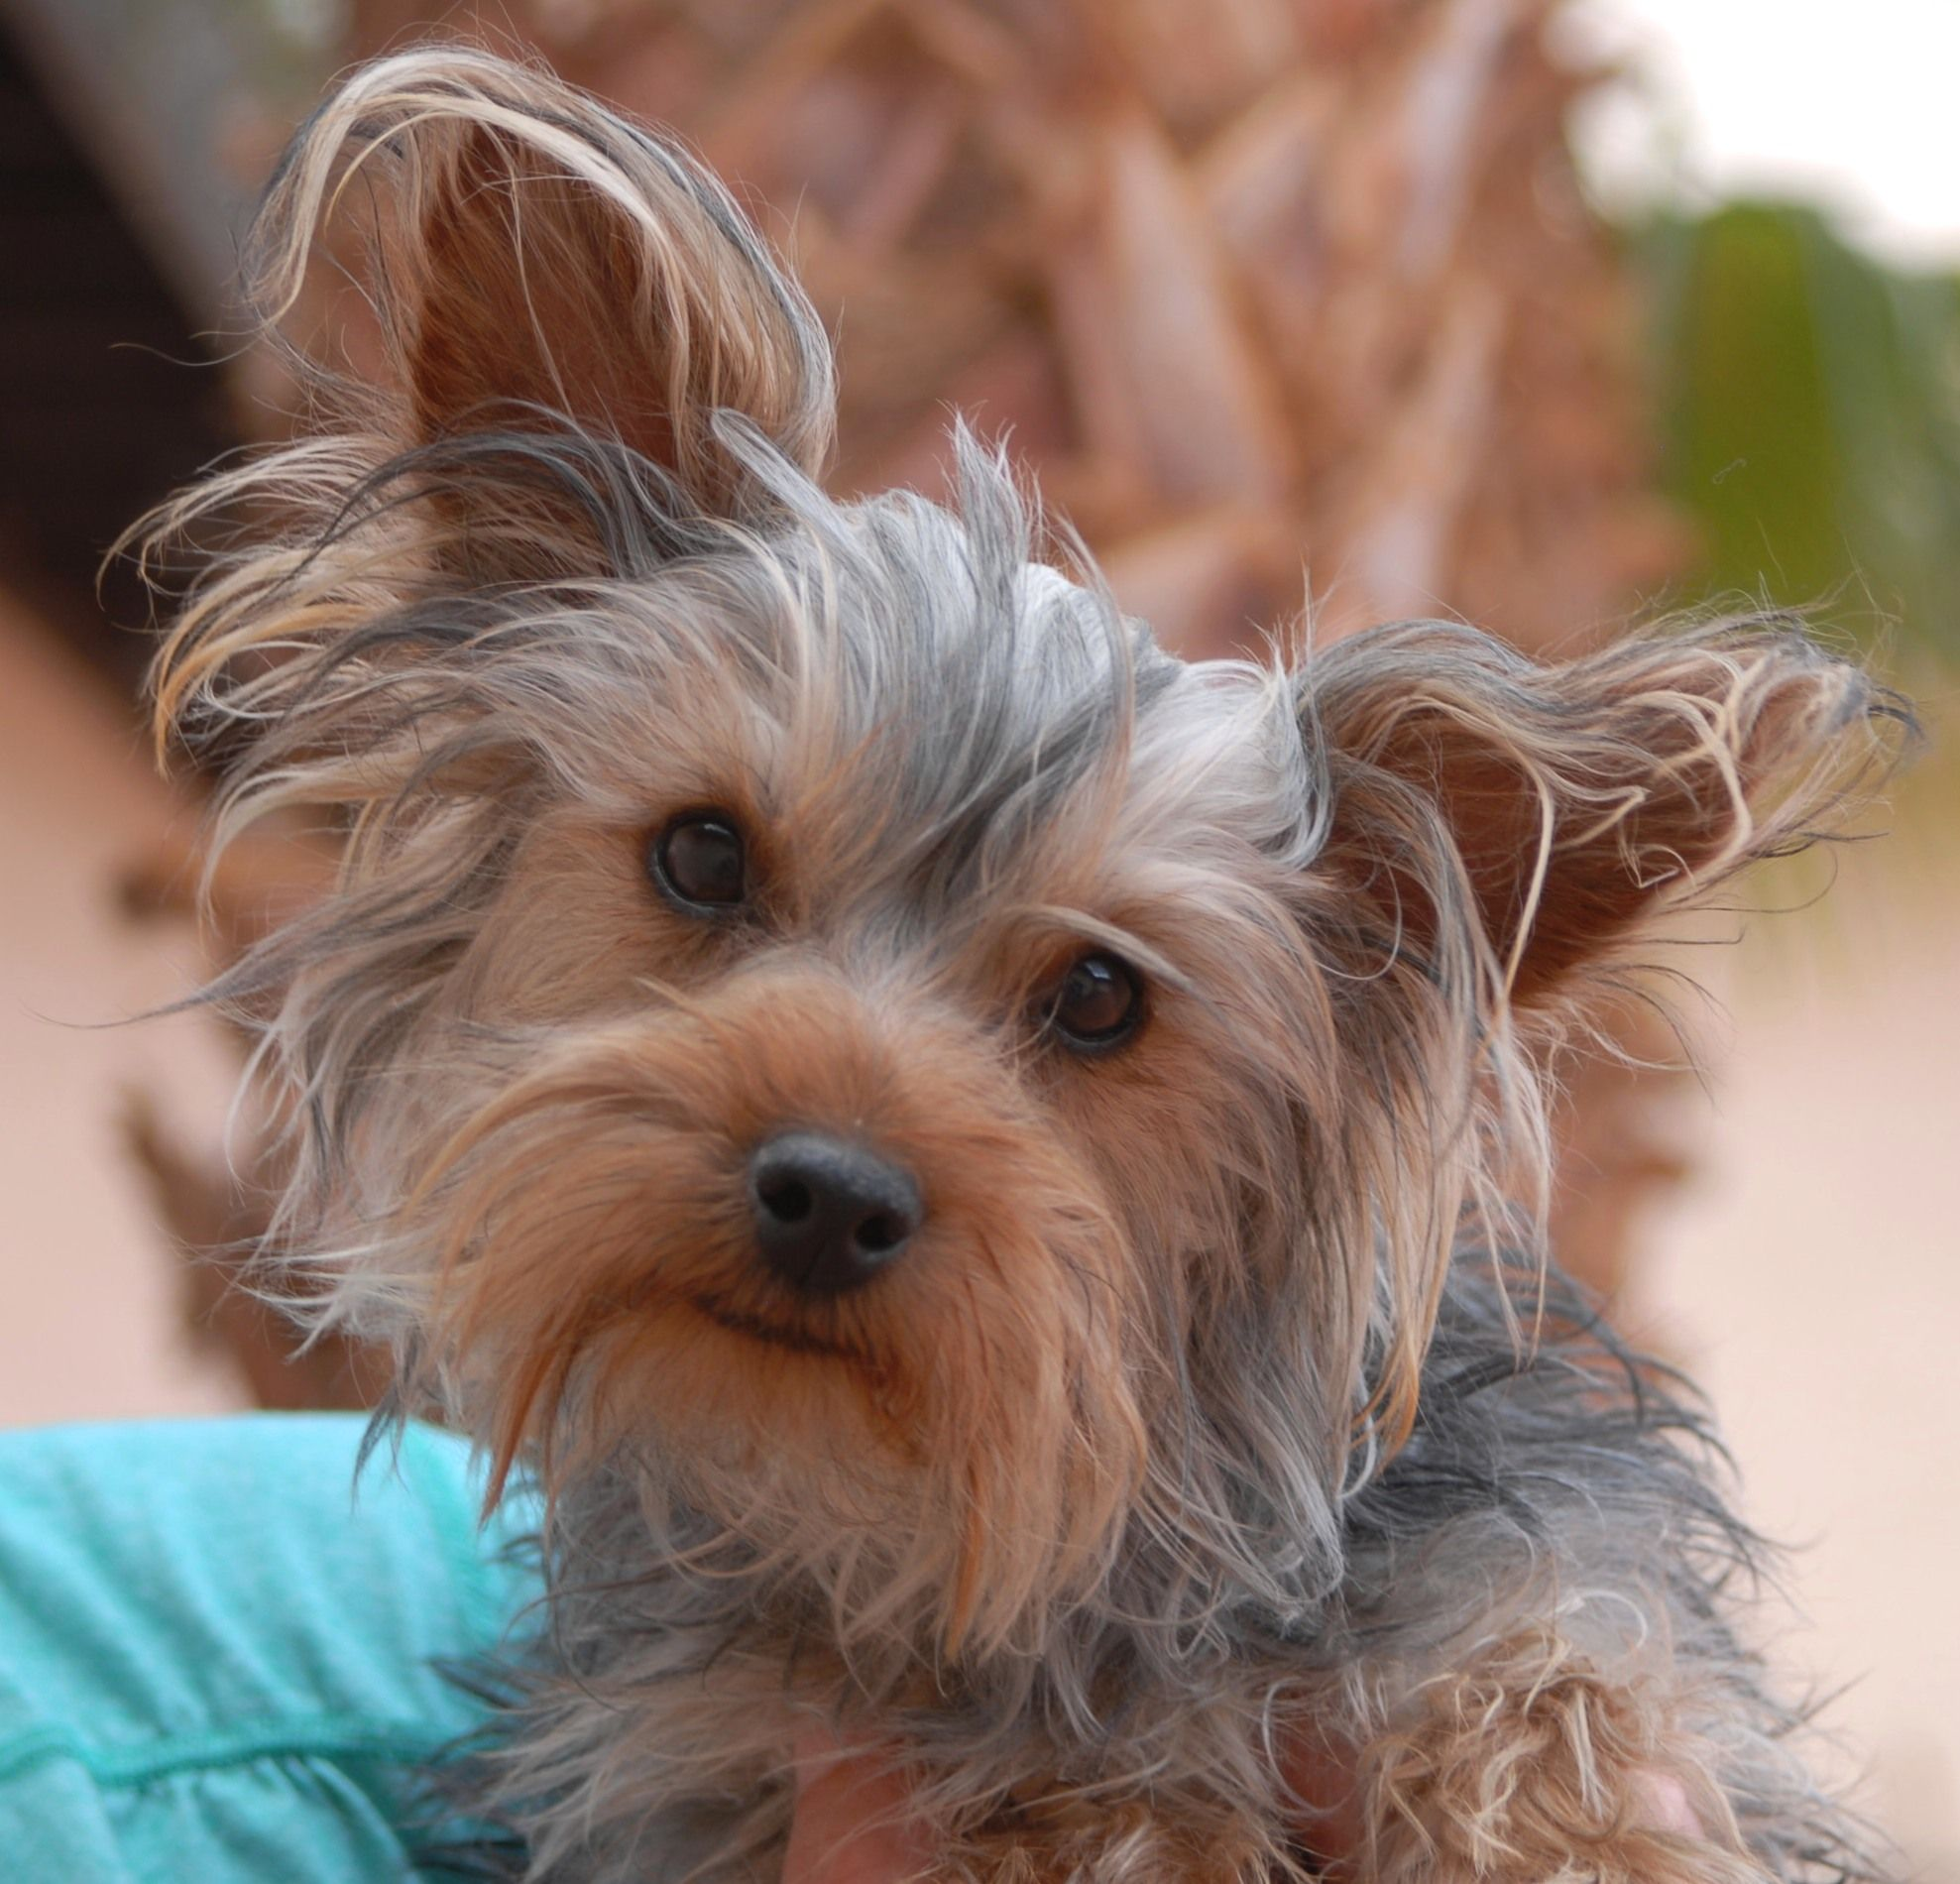 Peter, a snuggly junior puppy, debuts for adoption today